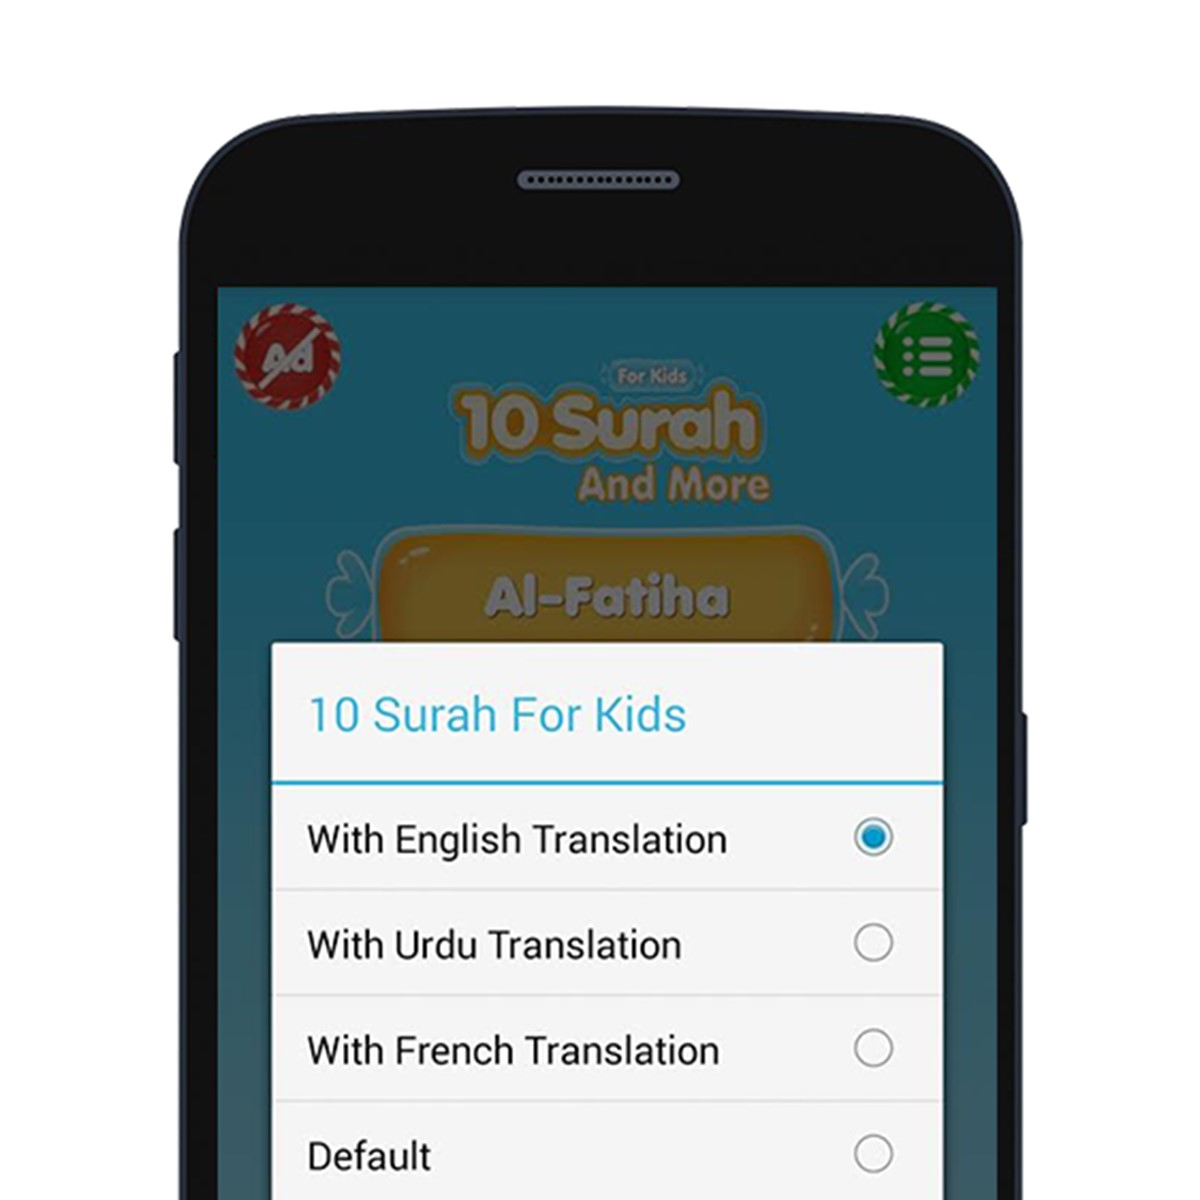 10 Surah for Kids Word By Word Alternatives and Similar Apps